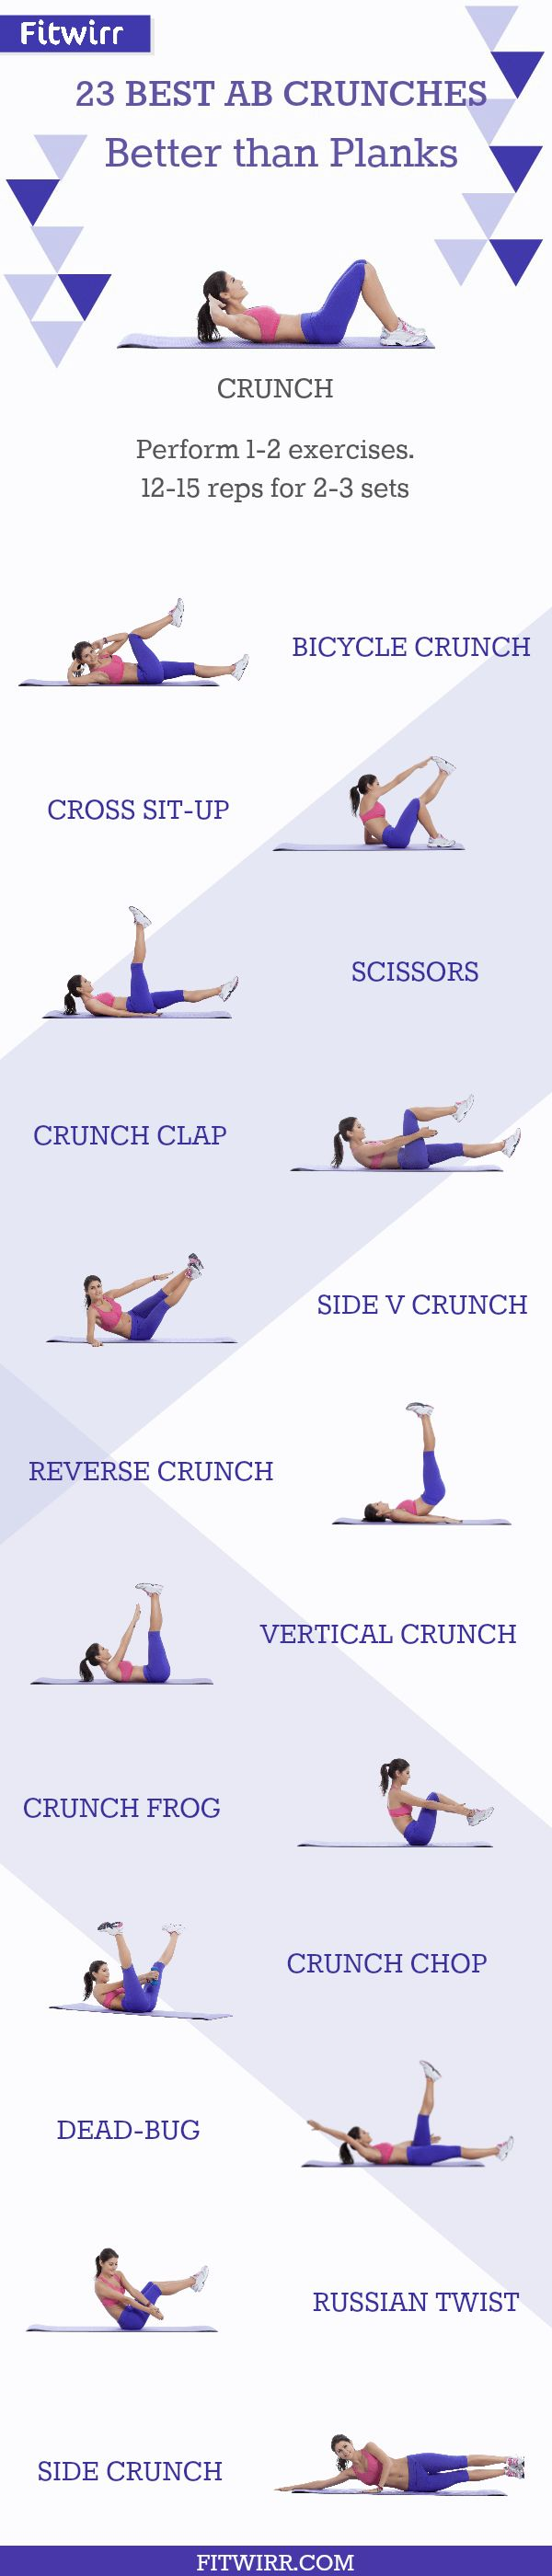 Crunches that work your abs harder than plank